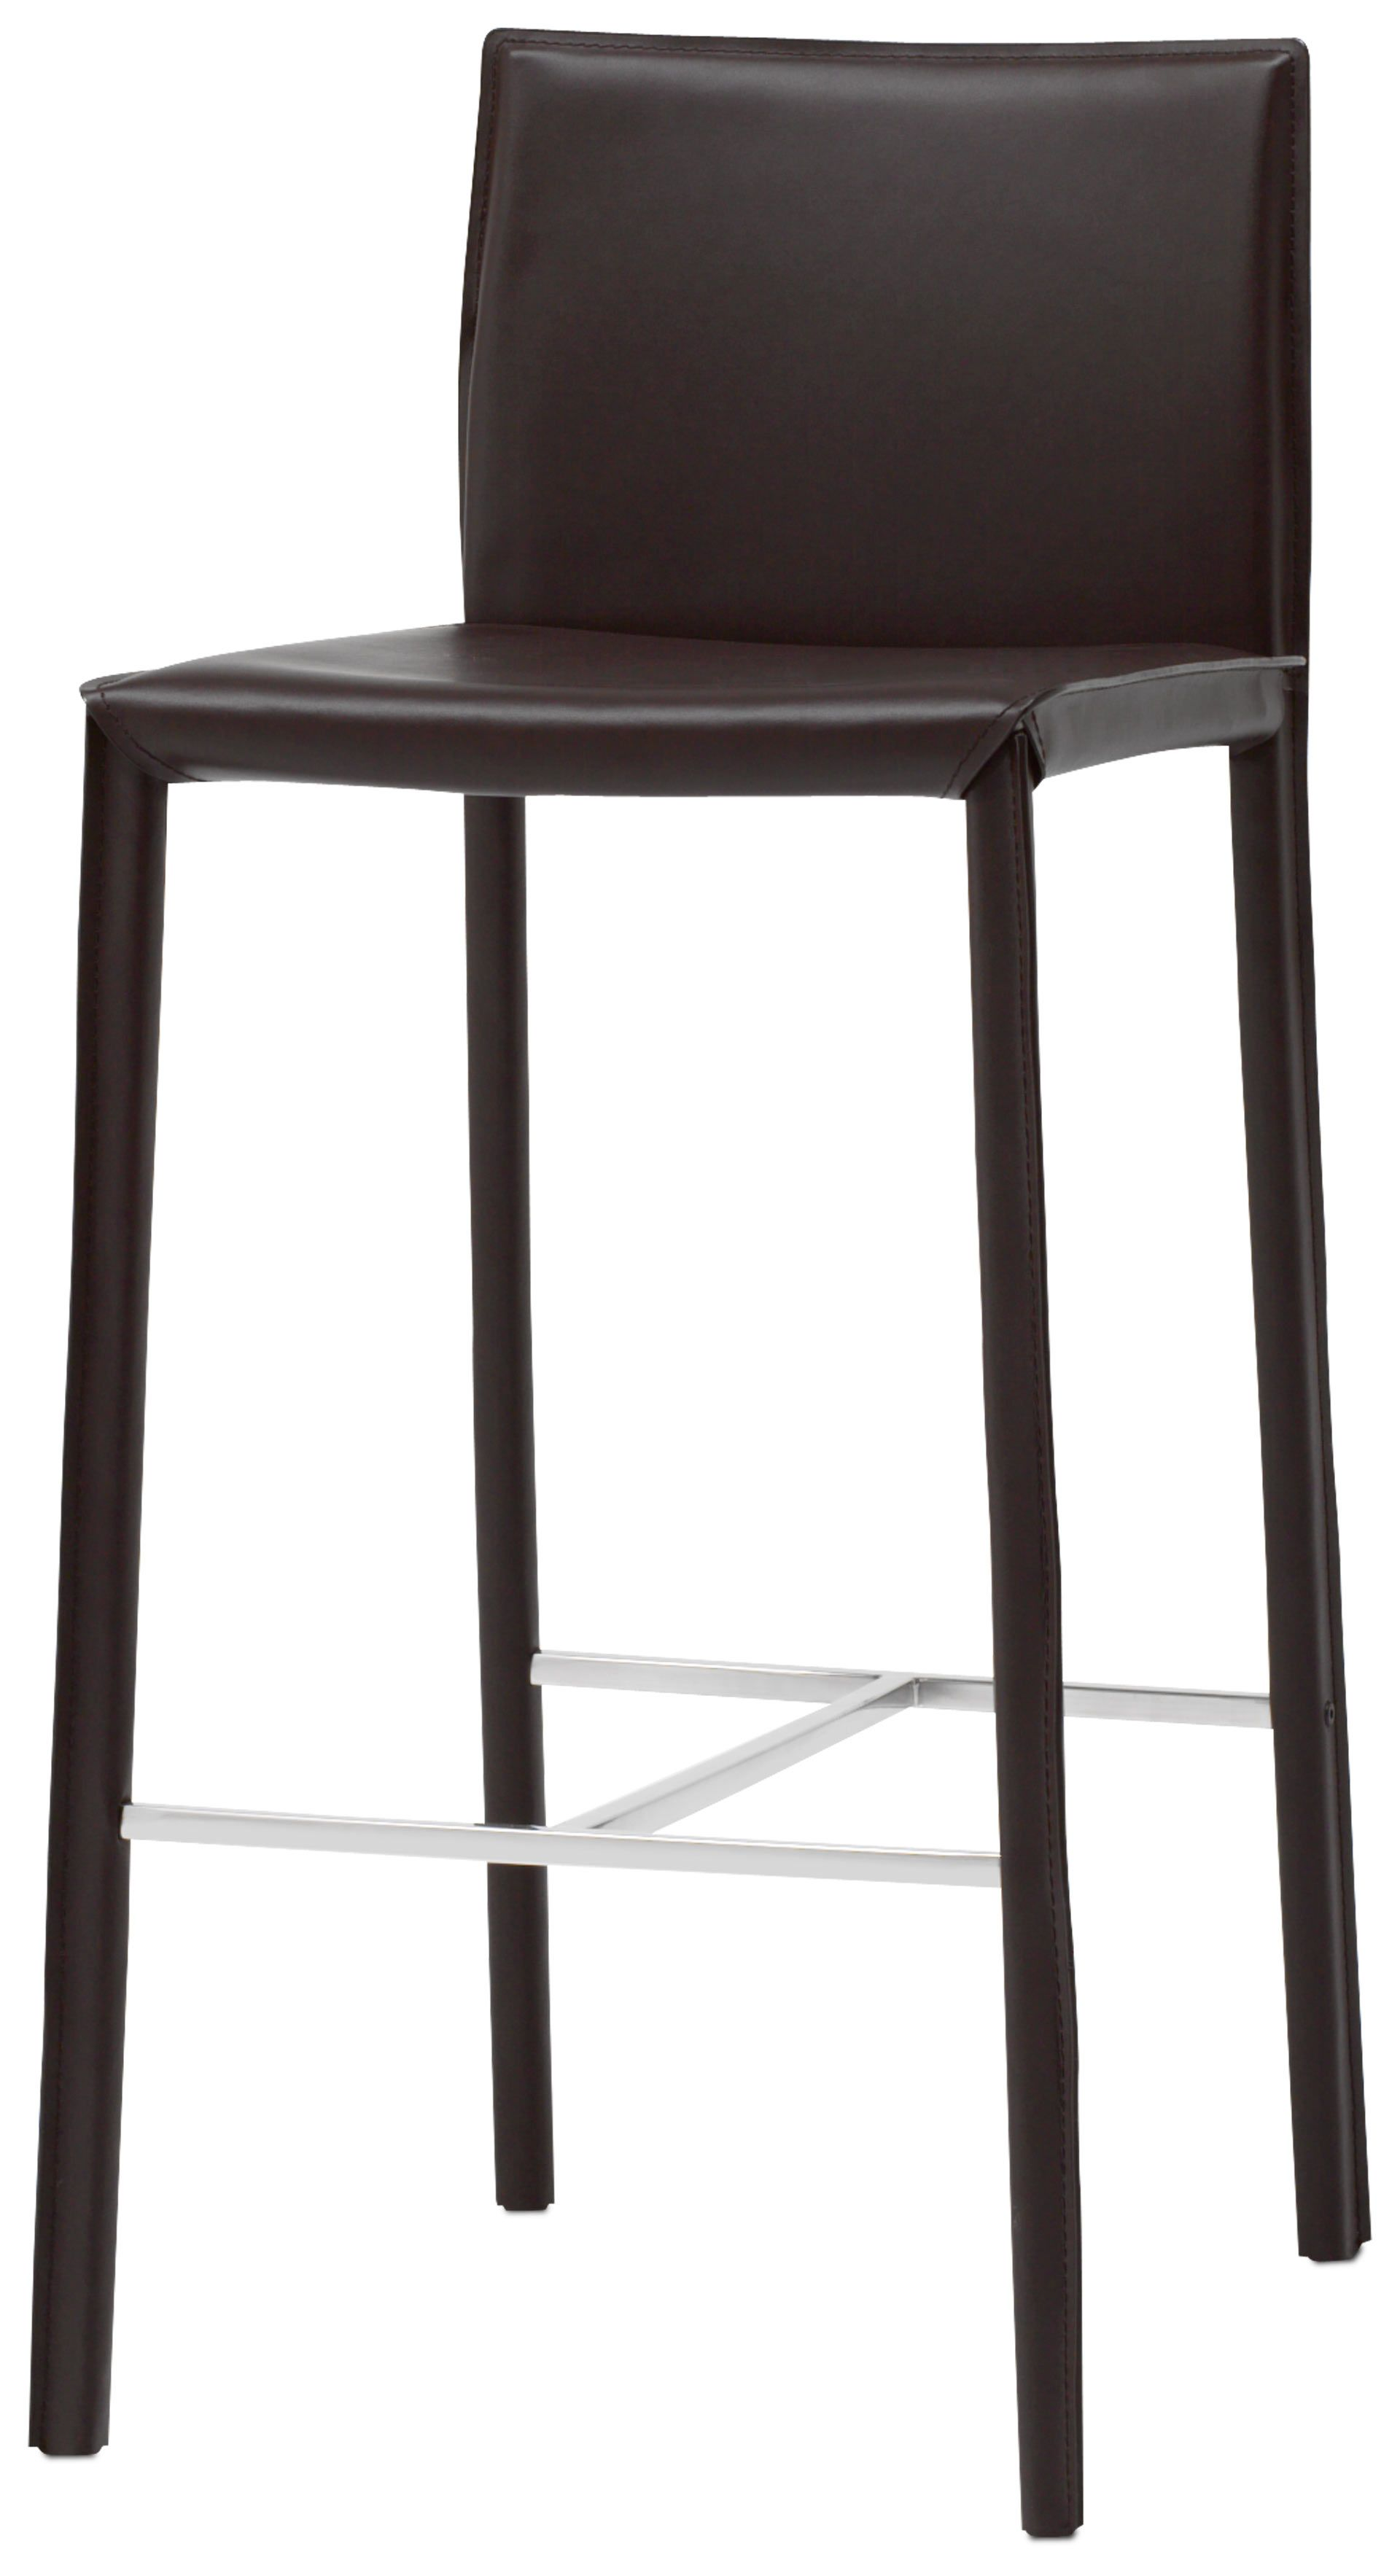 Zarra Barstool Save Now Was Zarra Barstool Black Bonded Leather